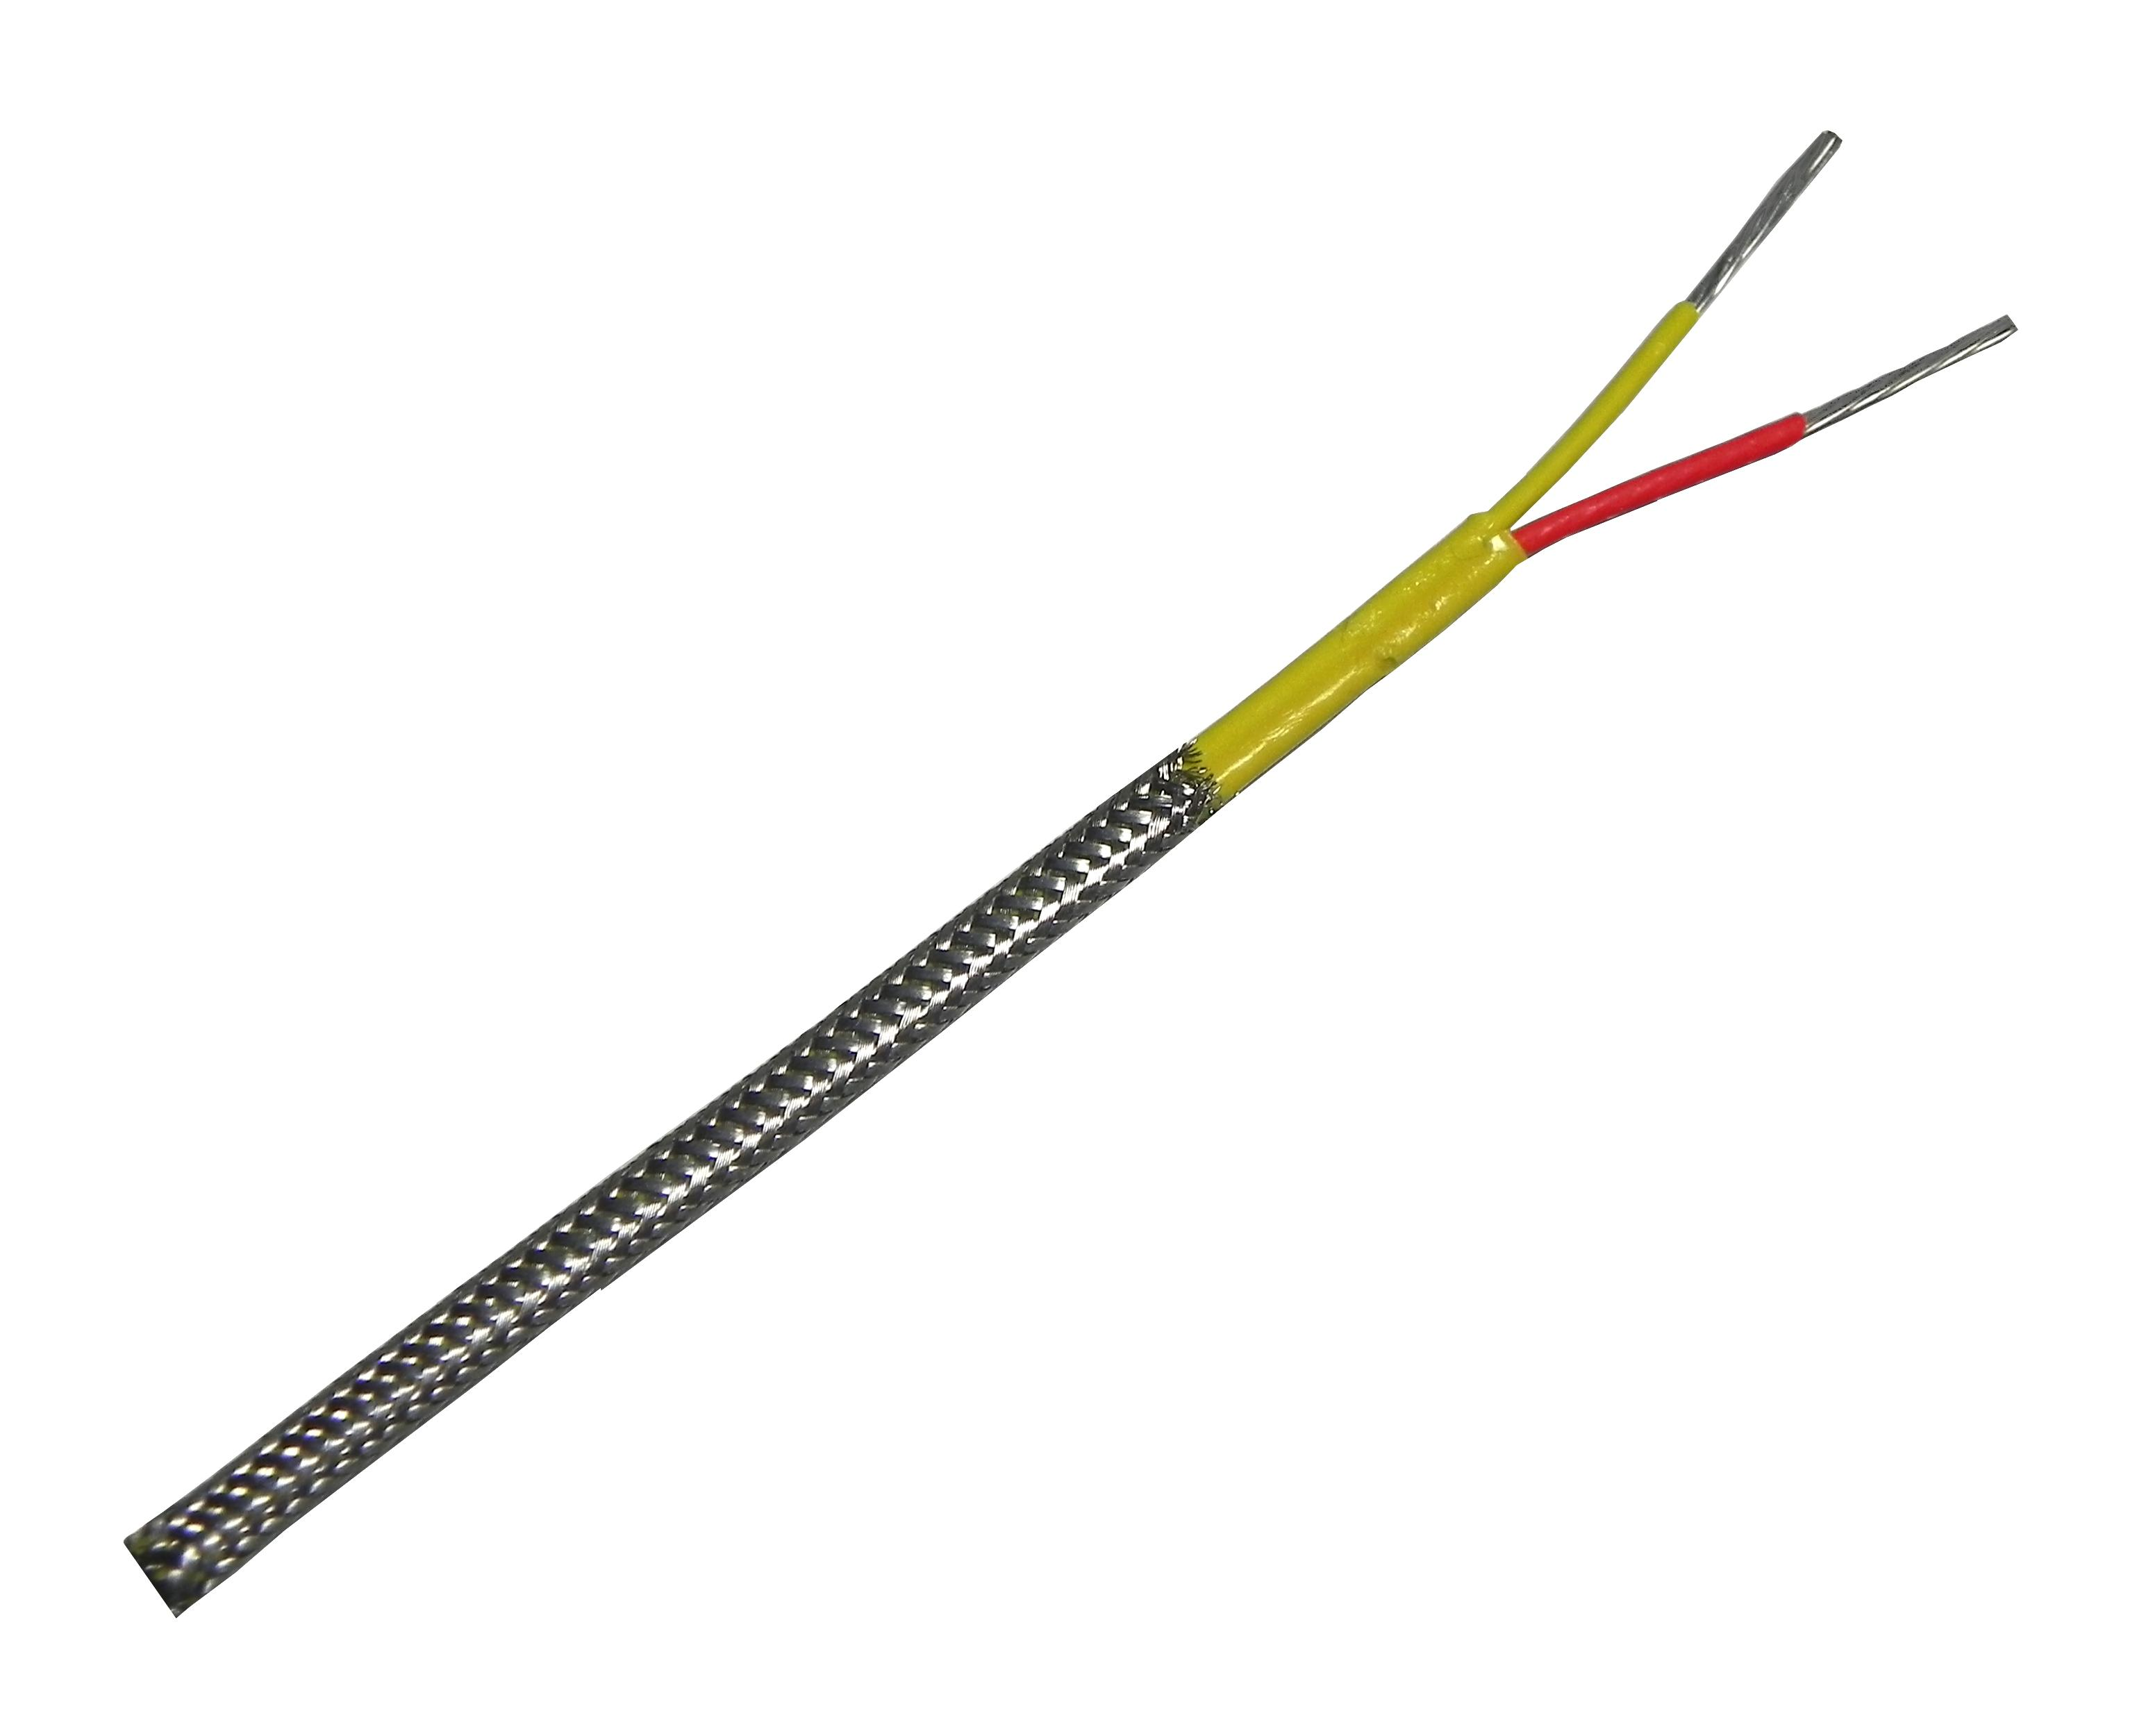 Thermocouple Extension Wire : Type k thermocouple extension wire with stainless steel